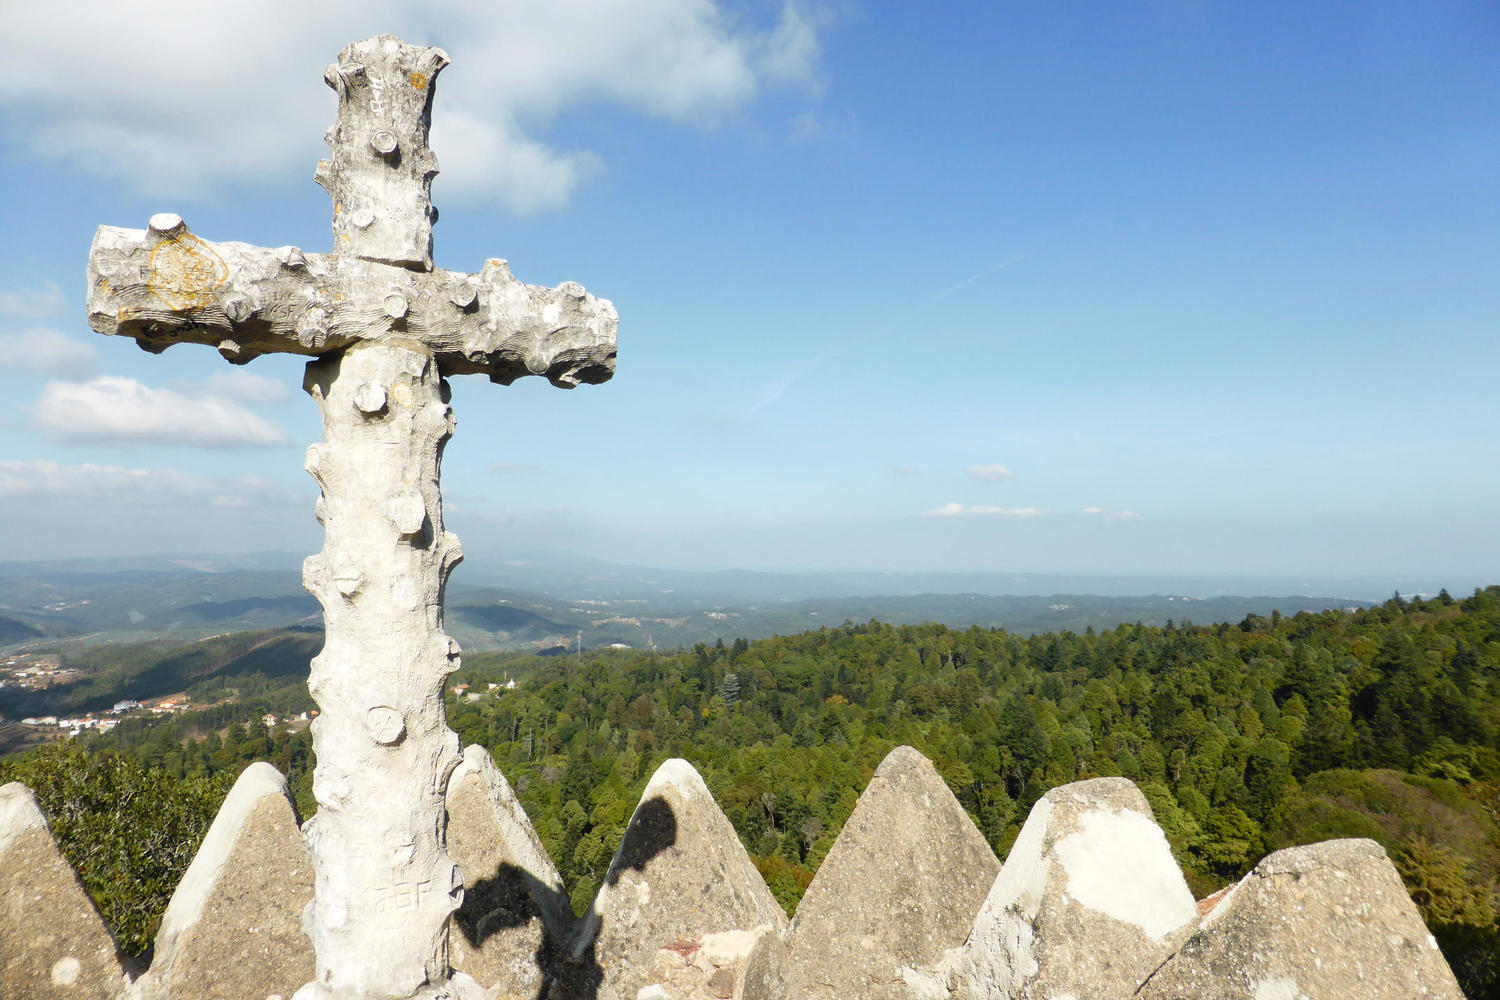 The Cruz Alta (High Cross) in the forest above Bussaco Palace